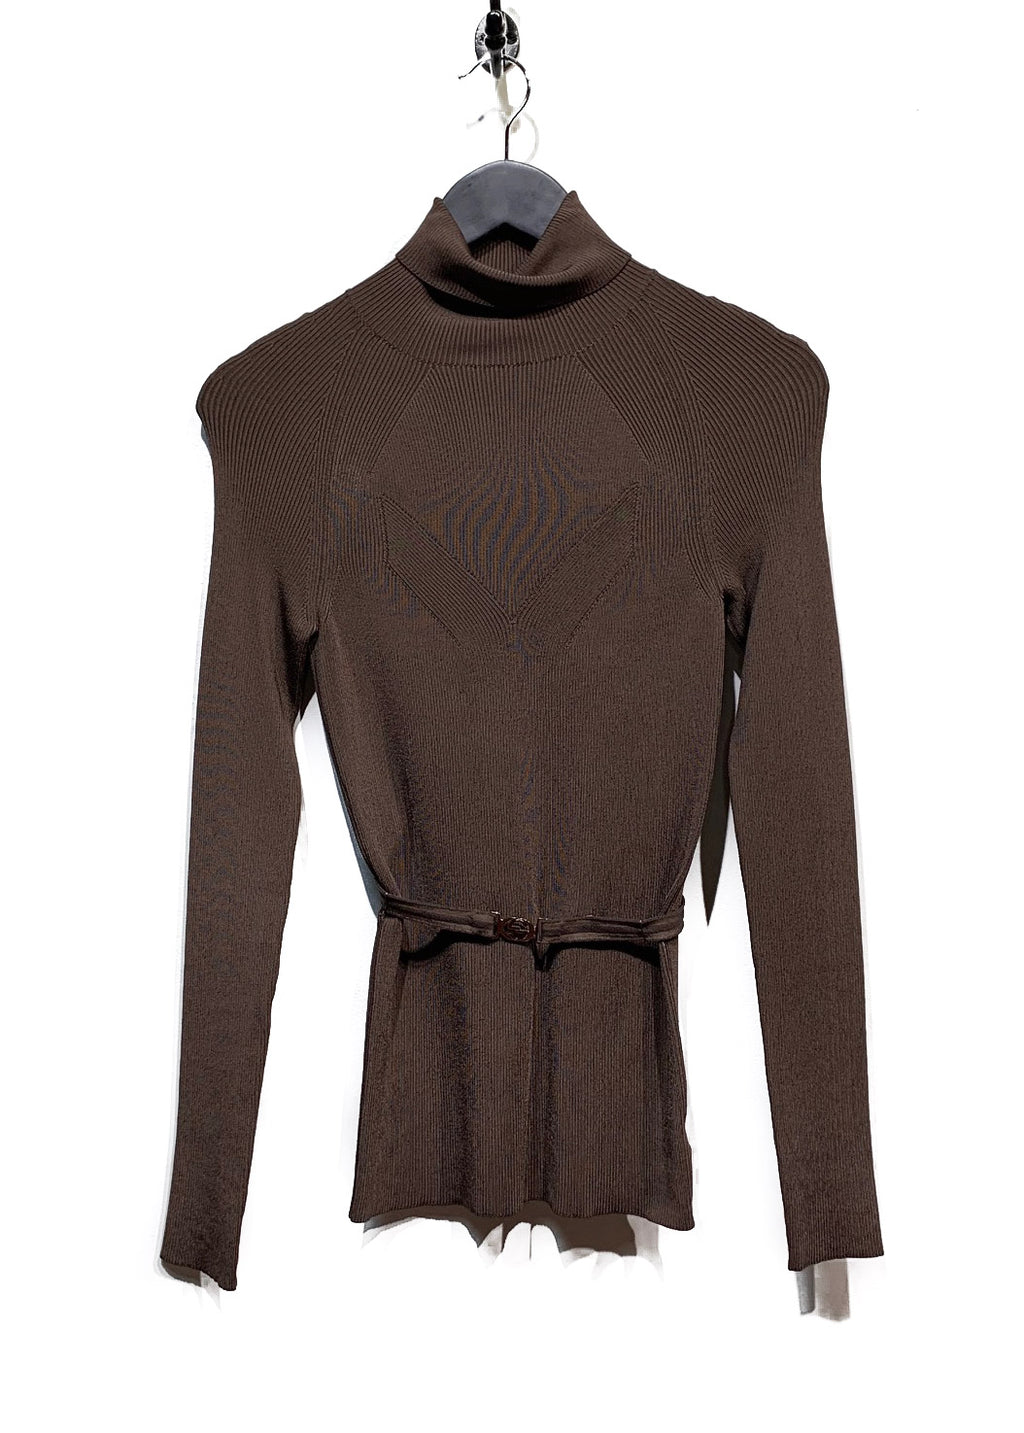 Gucci Brown Viscose Belted Top